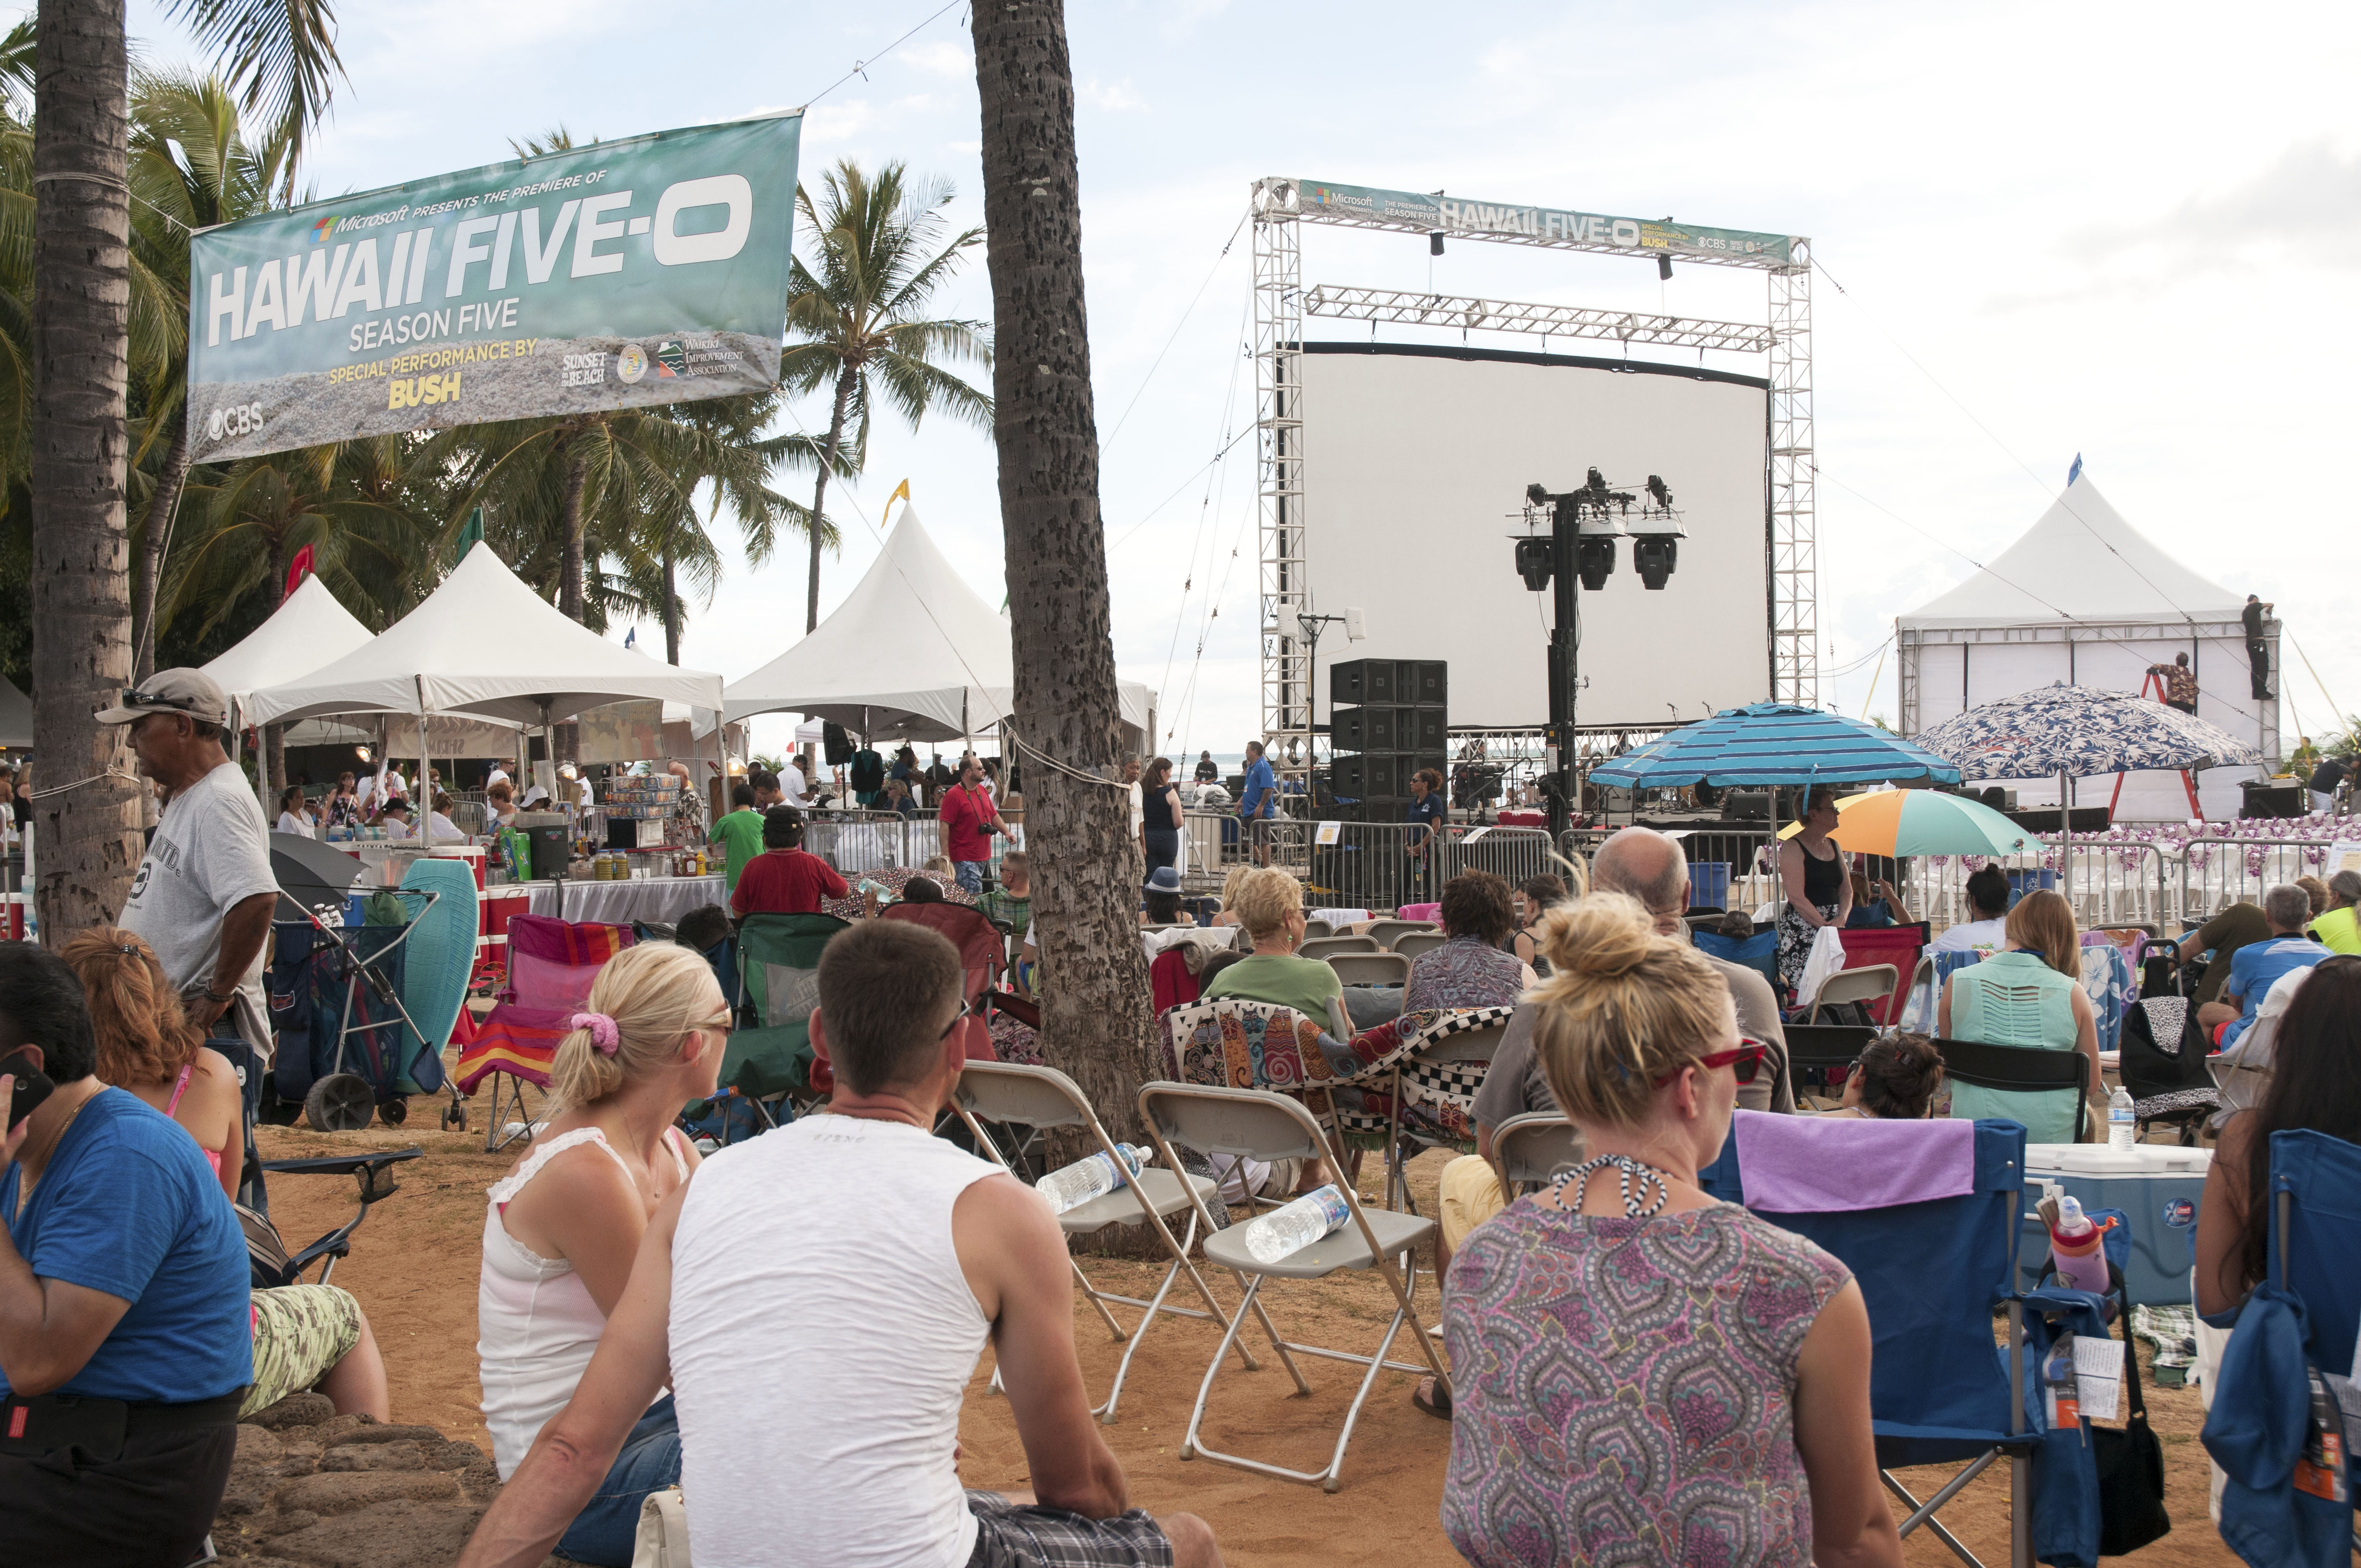 Hawaii Five-0 Fans Waiting Patiently